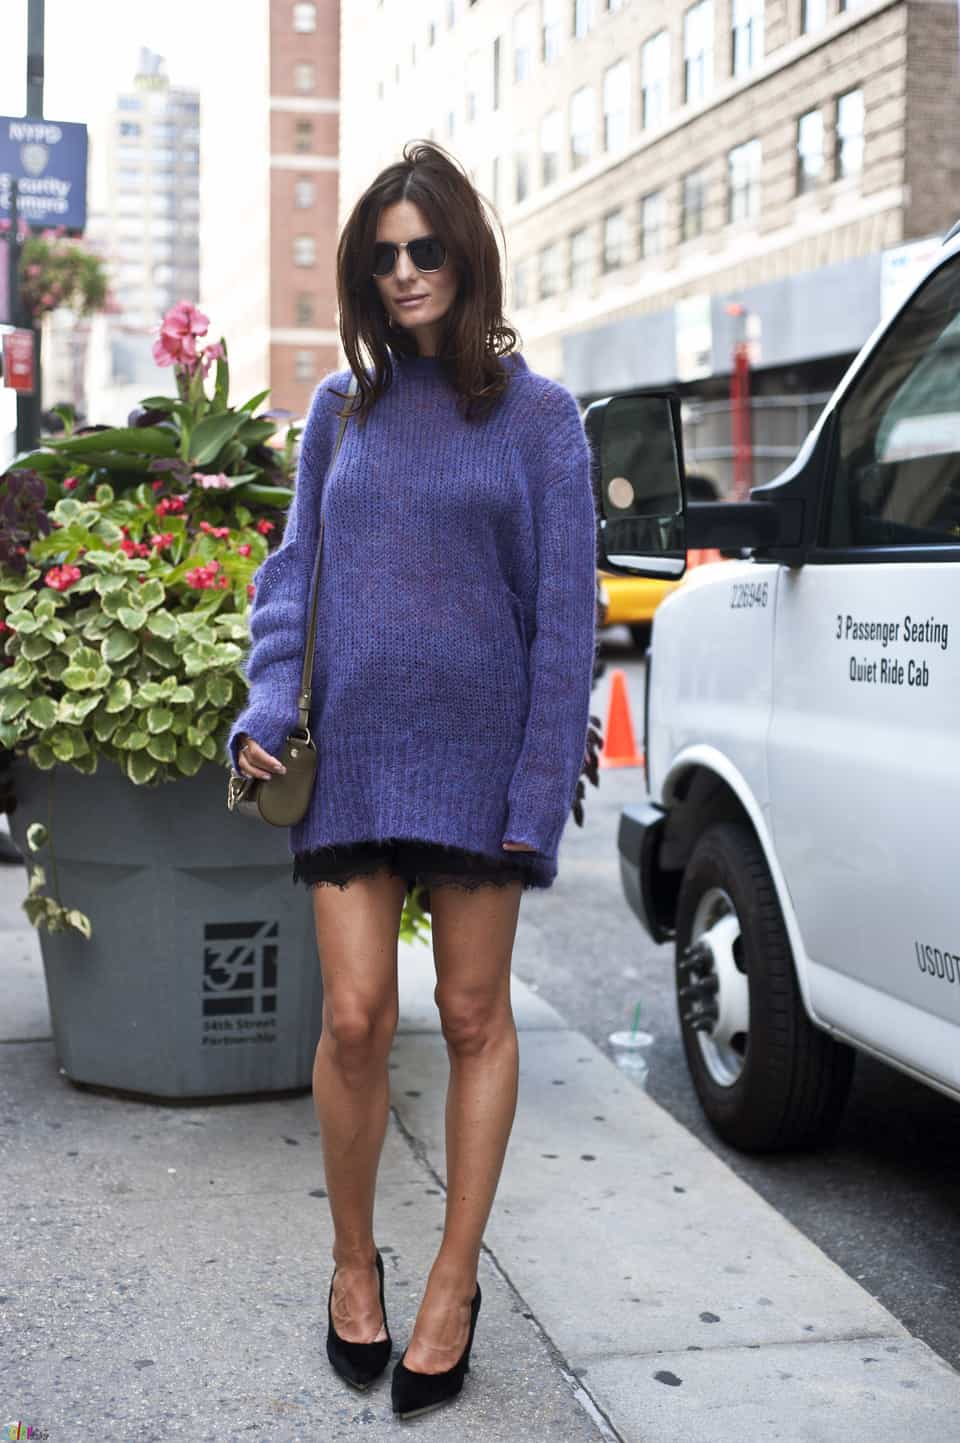 street-style-sweater-dresses (4)